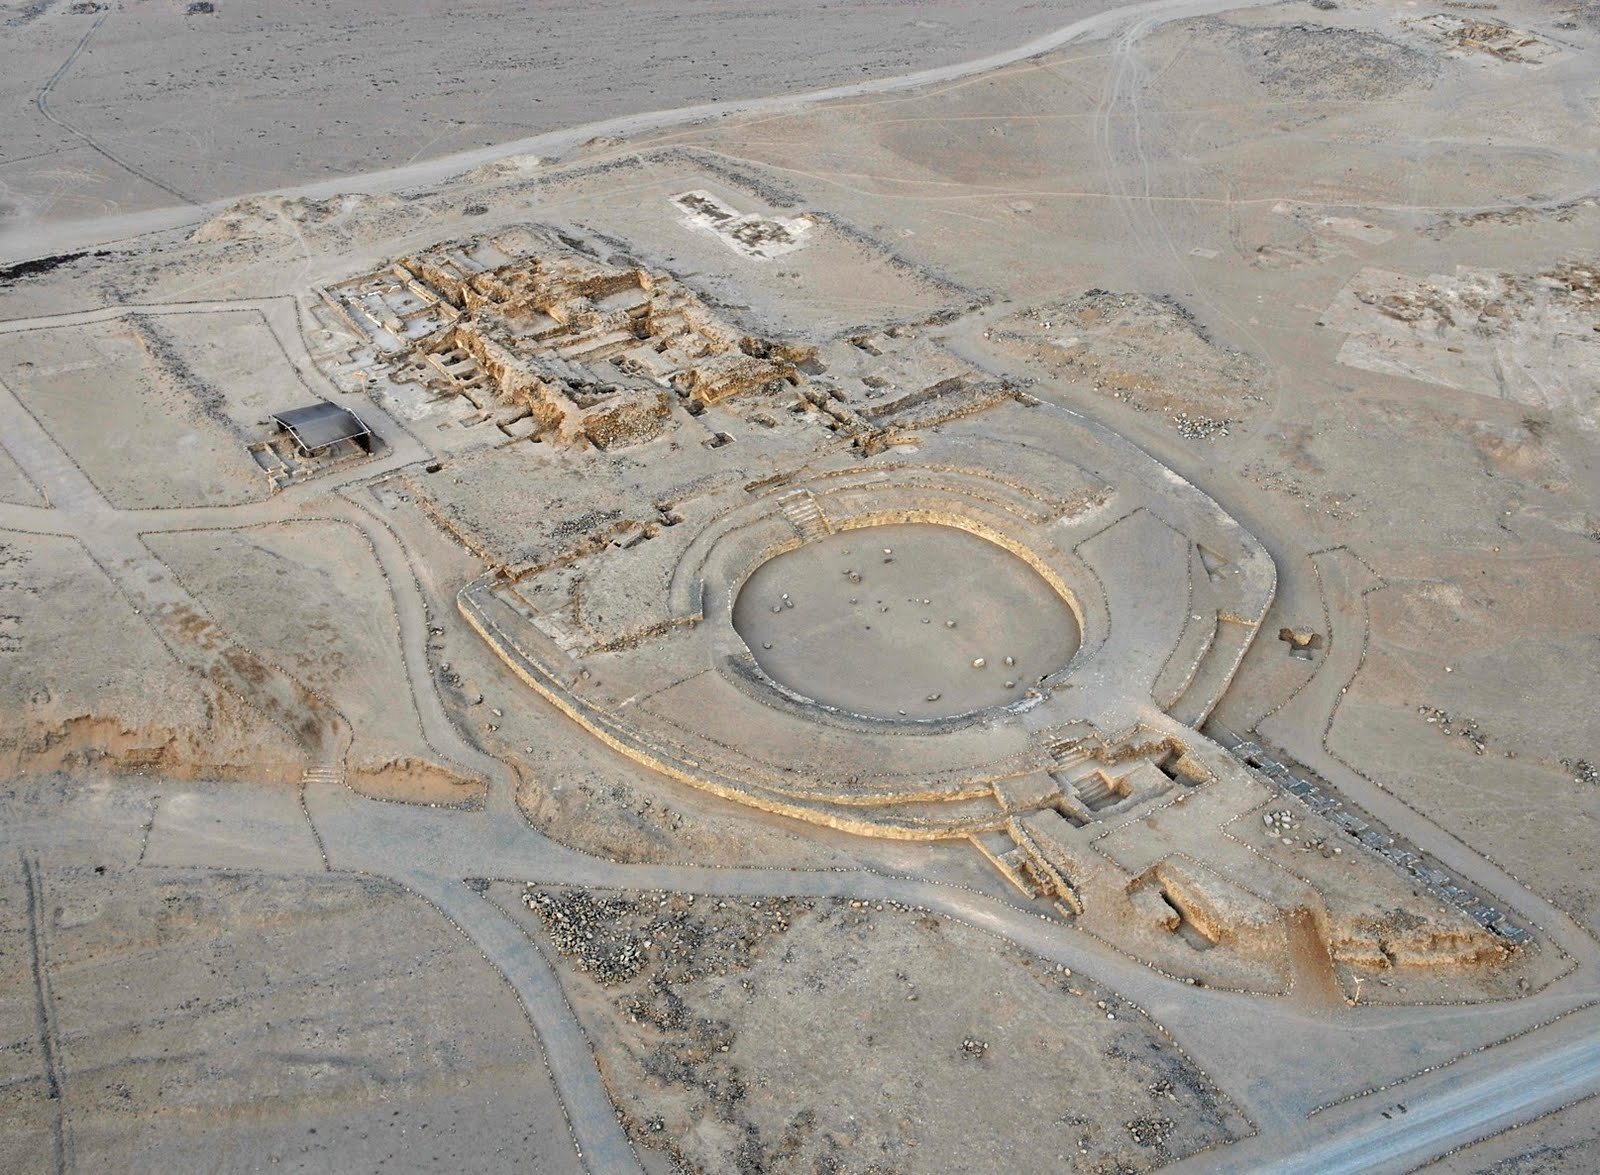 Incredible planing and construction methods present at Caral. Image source: http://testigodirectonoticias.blogspot.com/